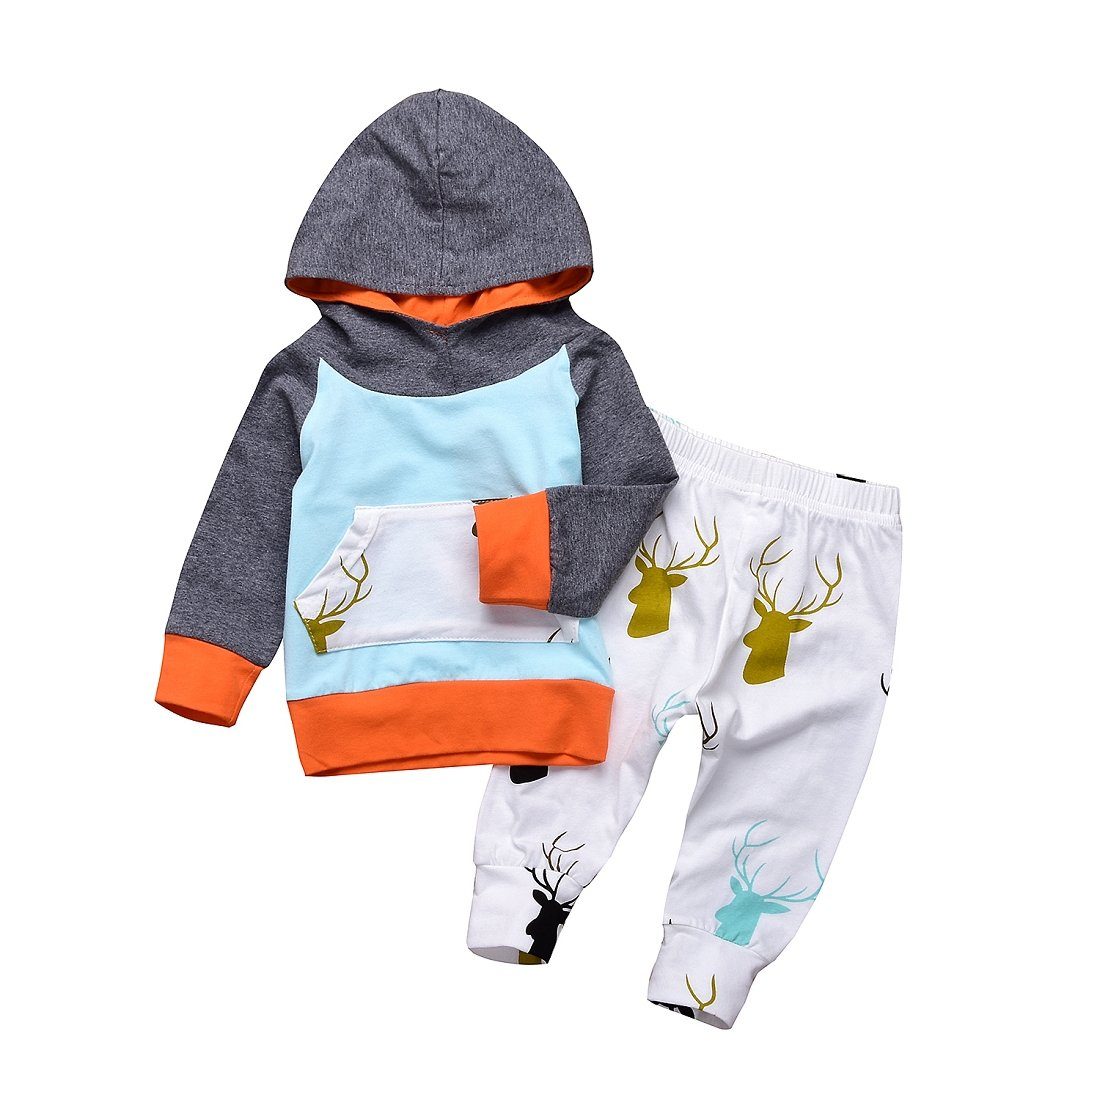 CPEI Toddler Infant Baby Boys Deer Long Sleeve Hoodie Tops Sweatsuit Pants Outfit Set